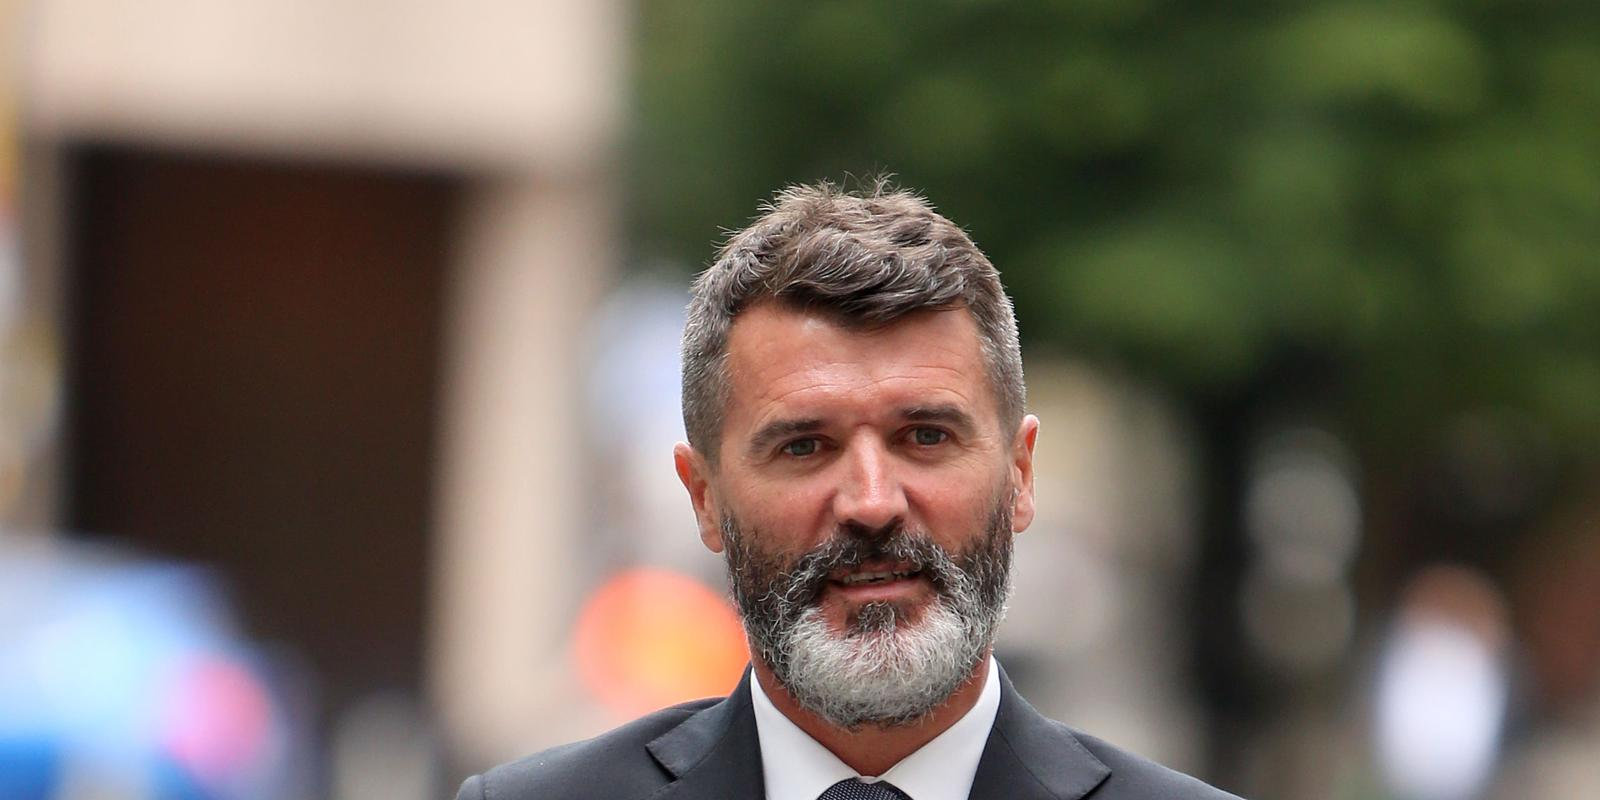 Roy Keane is not guilty of road rage incident with taxi driver